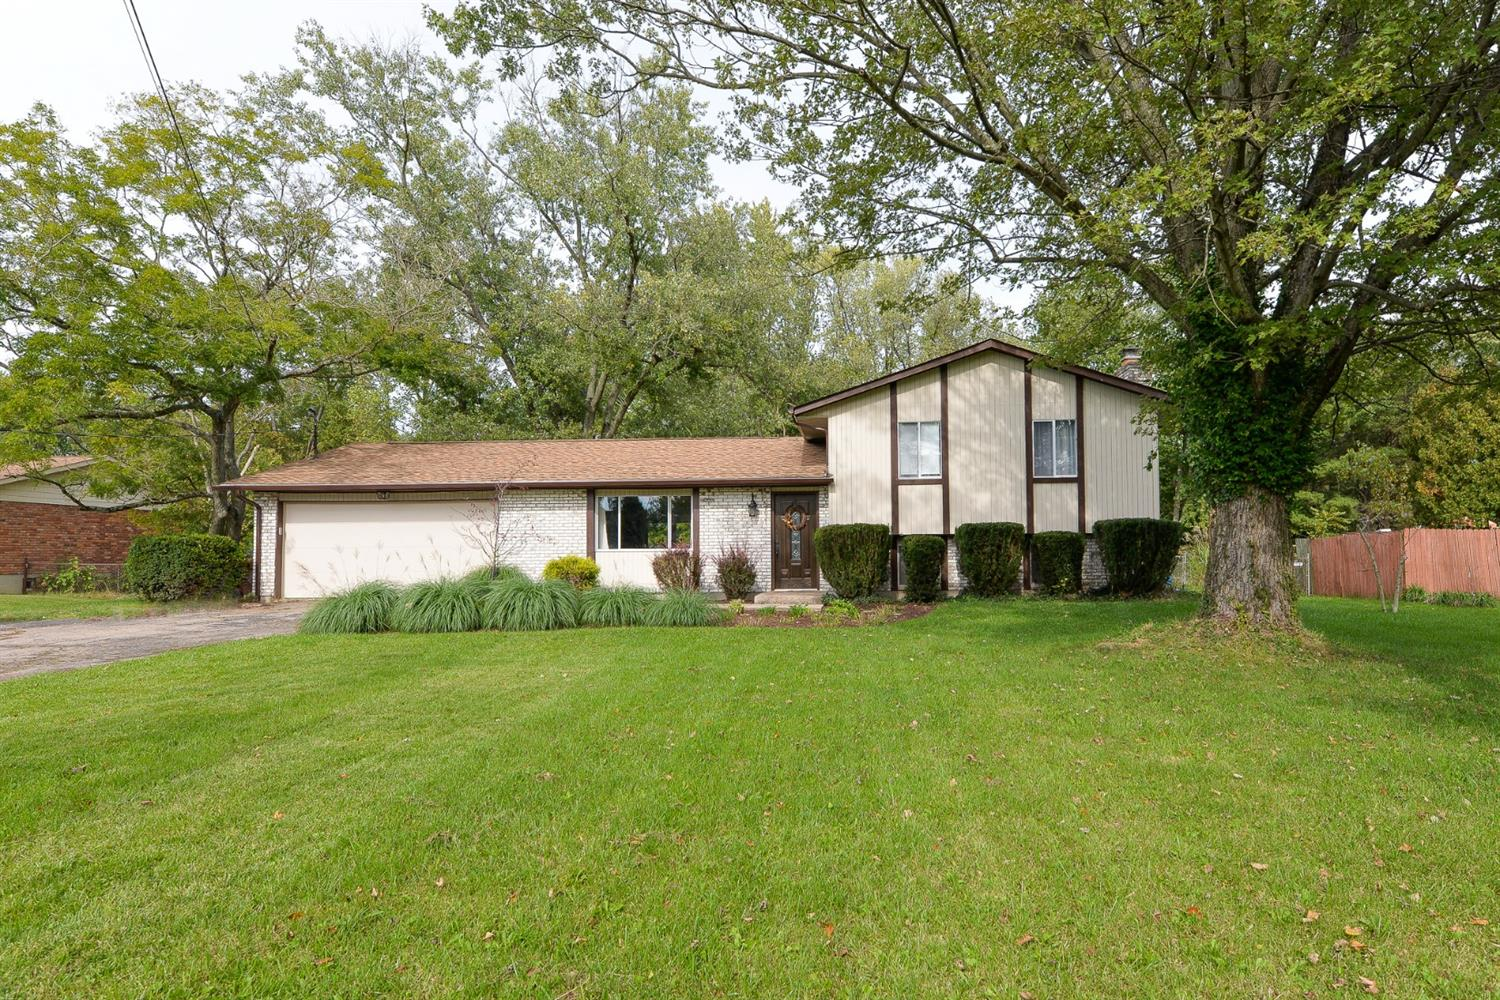 6594 Branch Hill Guinea Road, Miami Twp, Ohio 45140, 3 Bedrooms Bedrooms, 7 Rooms Rooms,2 BathroomsBathrooms,Single Family Residence,For Sale,Branch Hill Guinea,1719040